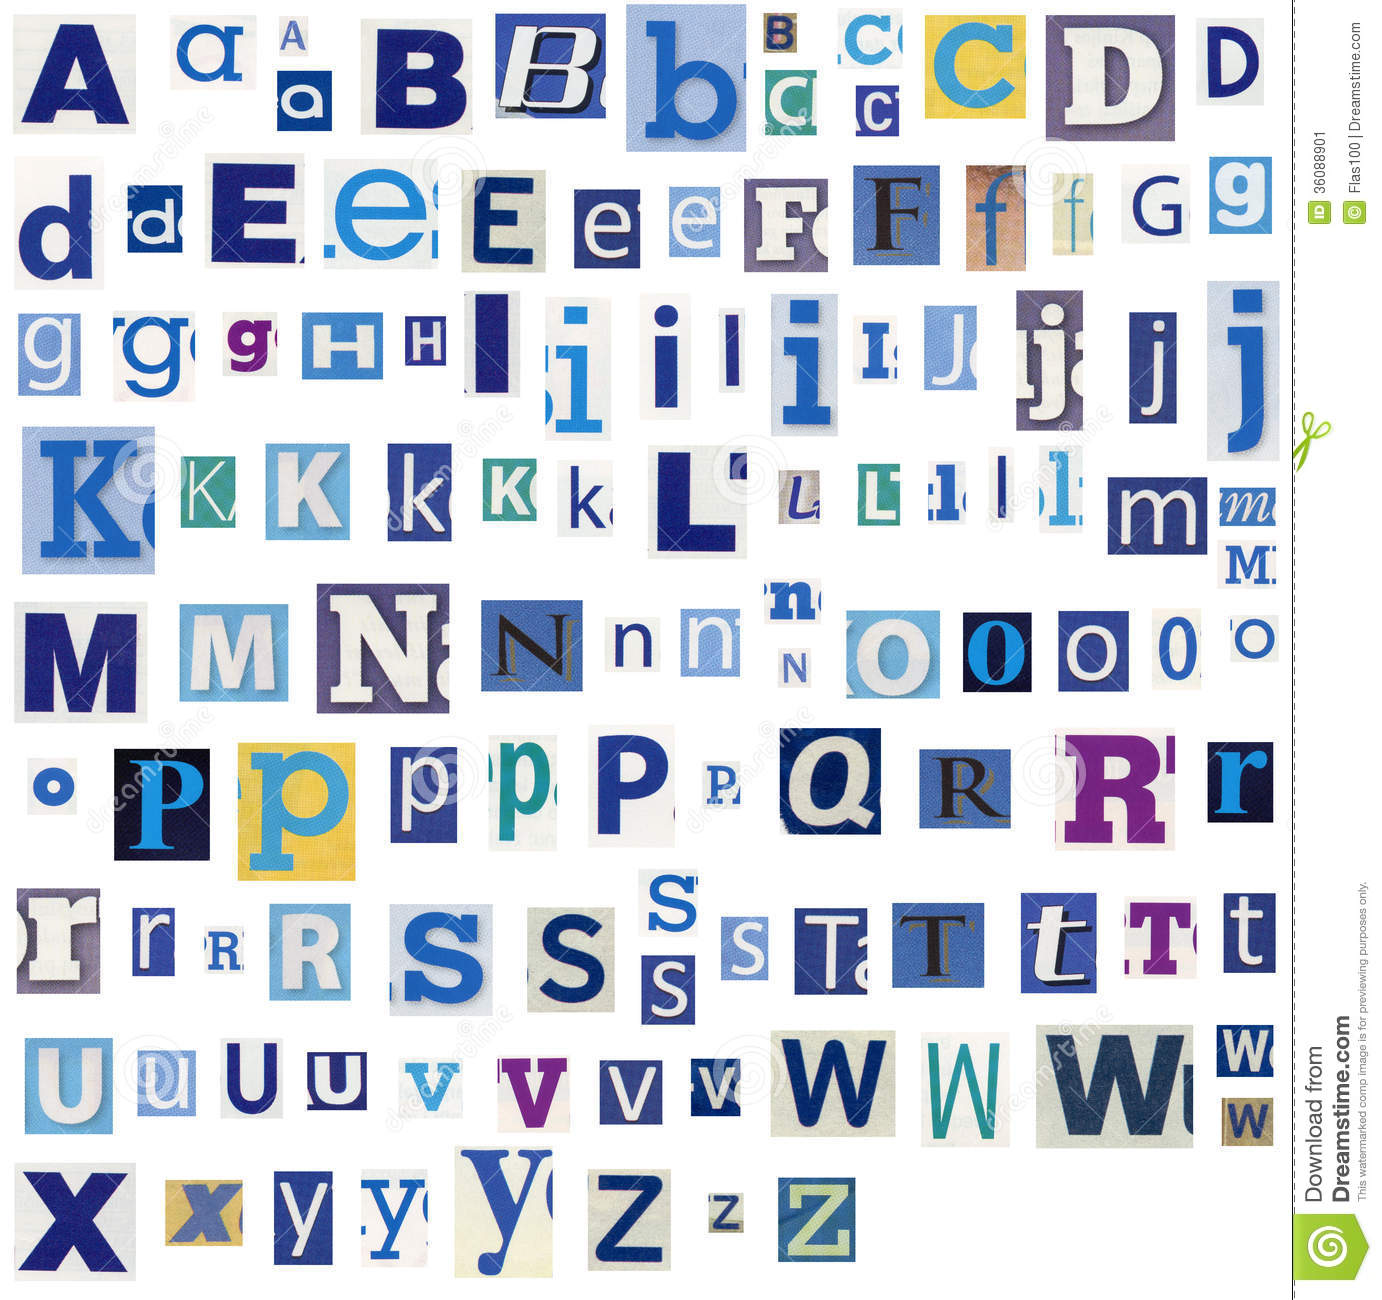 Alphabet Letters Made Of Newspaper, Magazine Stock Image - Image ...